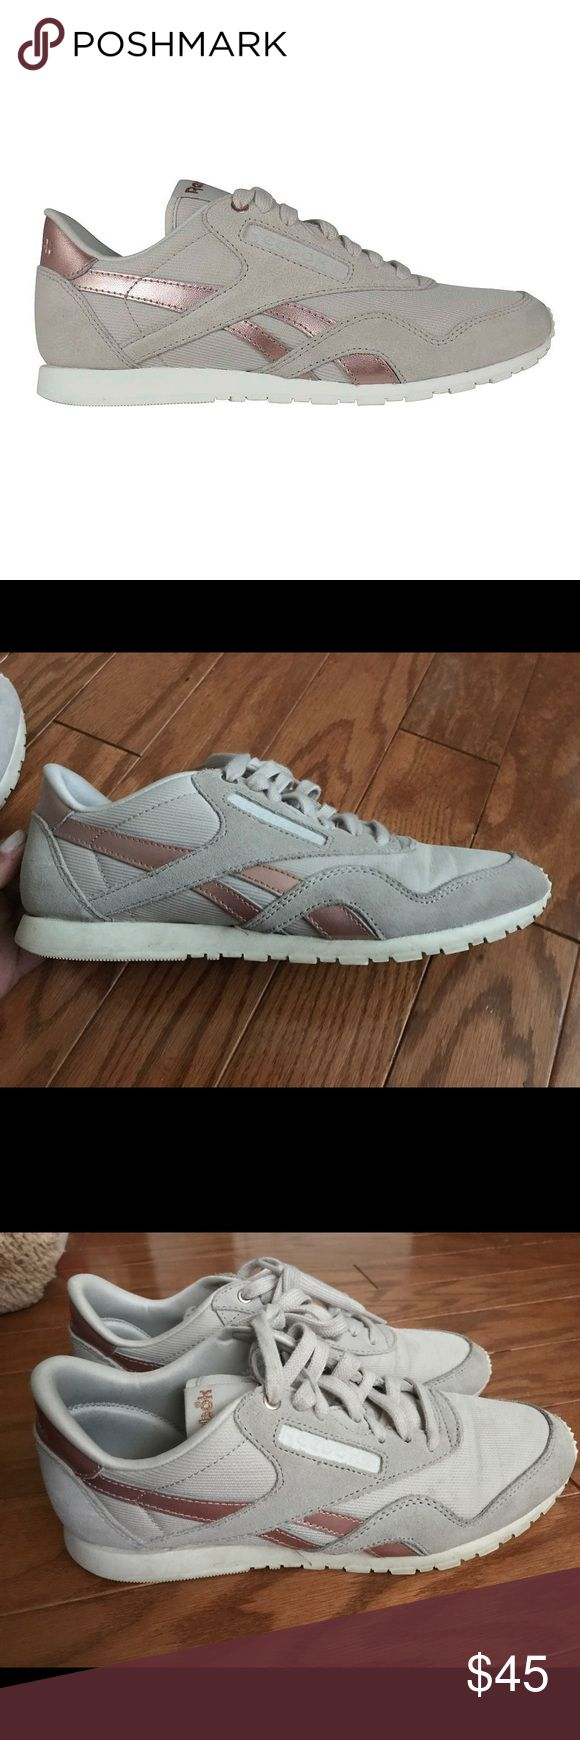 Pink Reebok Classic Metallic Sneakers Cute and comfortable reeboks. Unique and hard to find. Light wear & tear. Willing to negotiate. Ships today! Reebok Shoes Sneakers